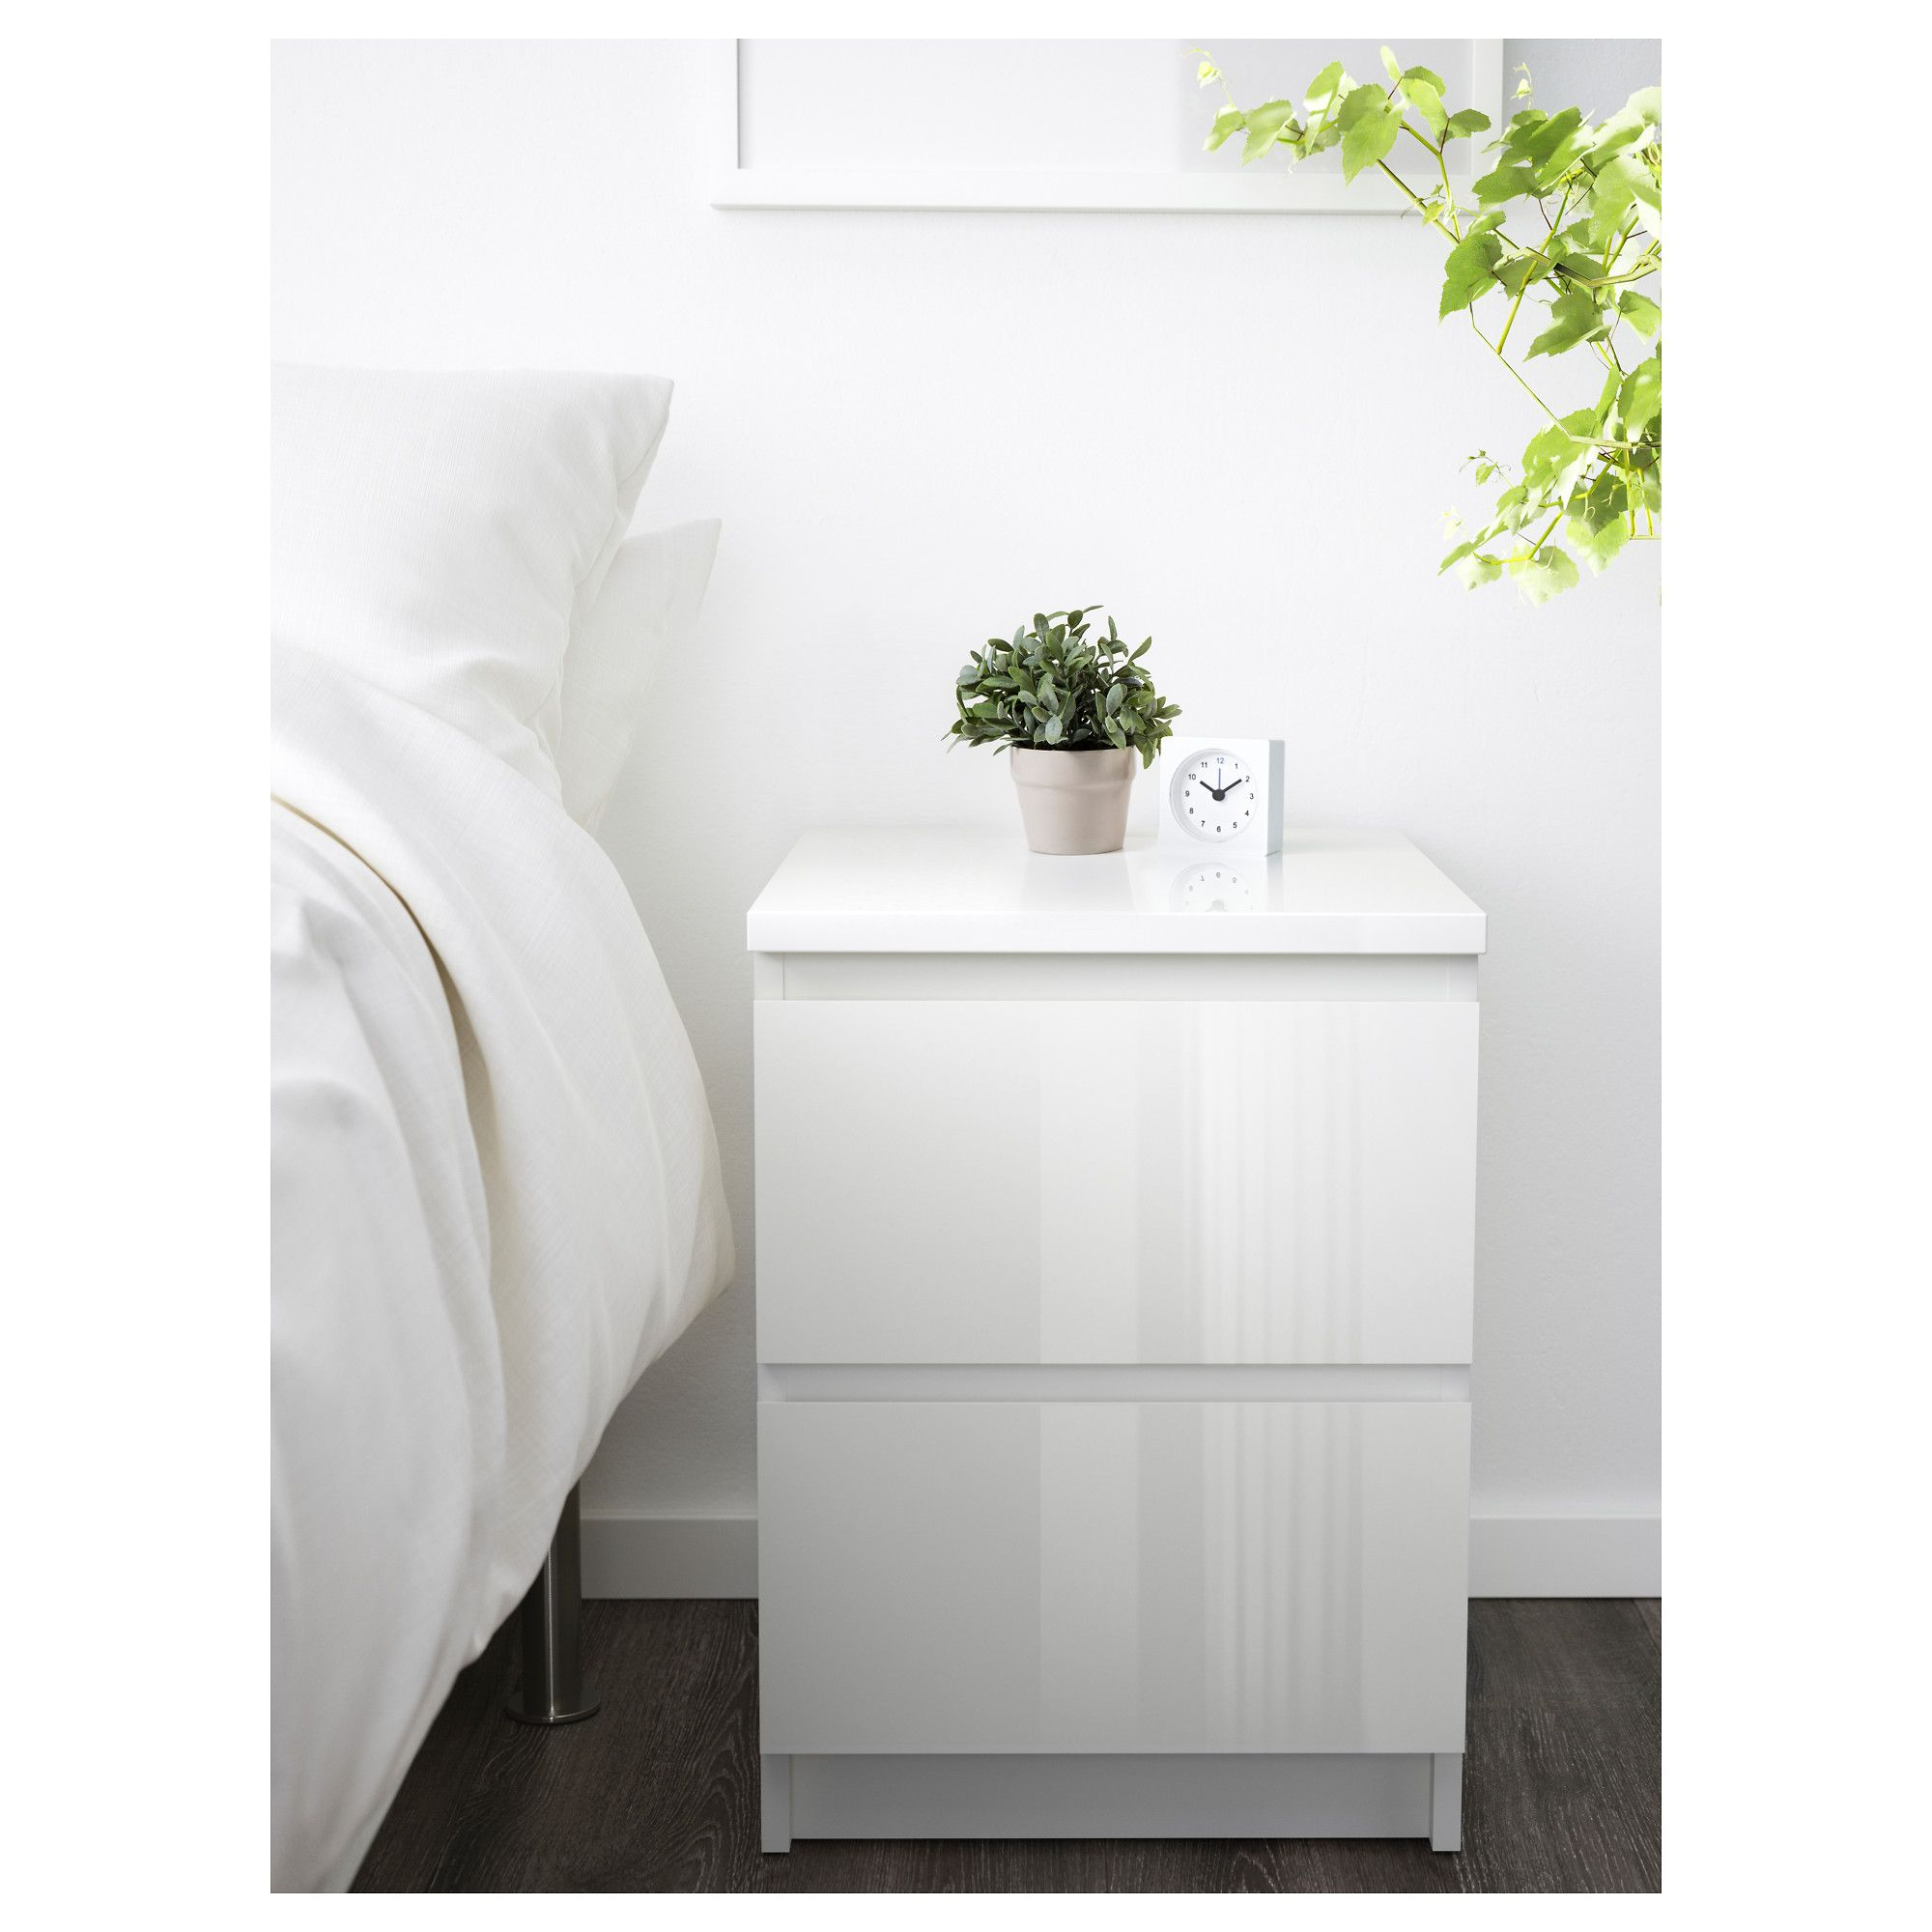 Malm chest of 2 drawers whitehigh gloss ikea ikea malm malm and malm chest of 2 drawers whitehigh gloss 40x55 cm ikea watchthetrailerfo